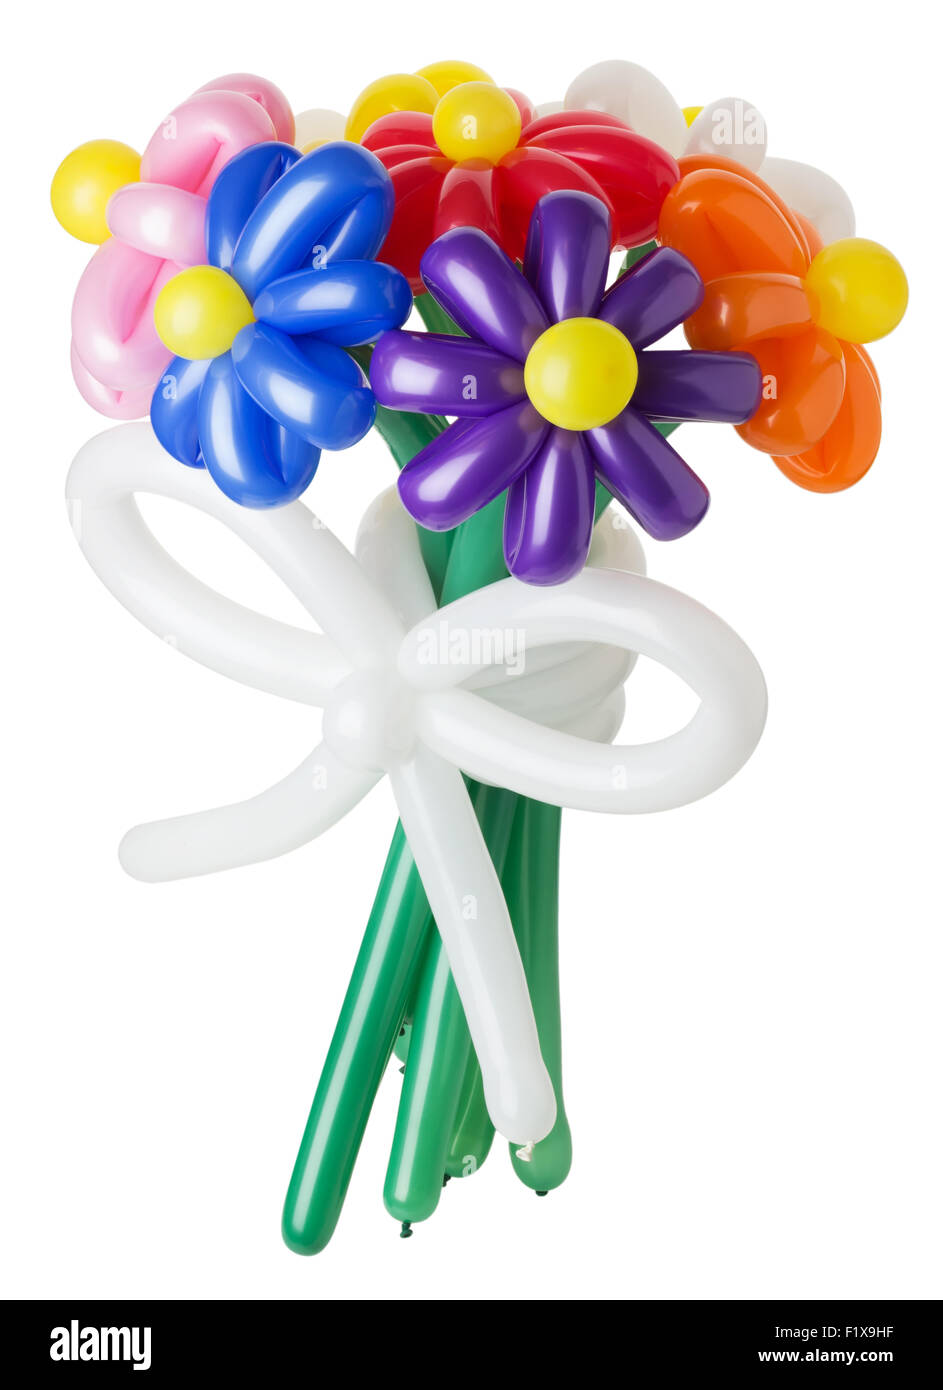 Balloon bouquet stock photos balloon bouquet stock images alamy bouquet with colorful balloon flowers on the white background stock image izmirmasajfo